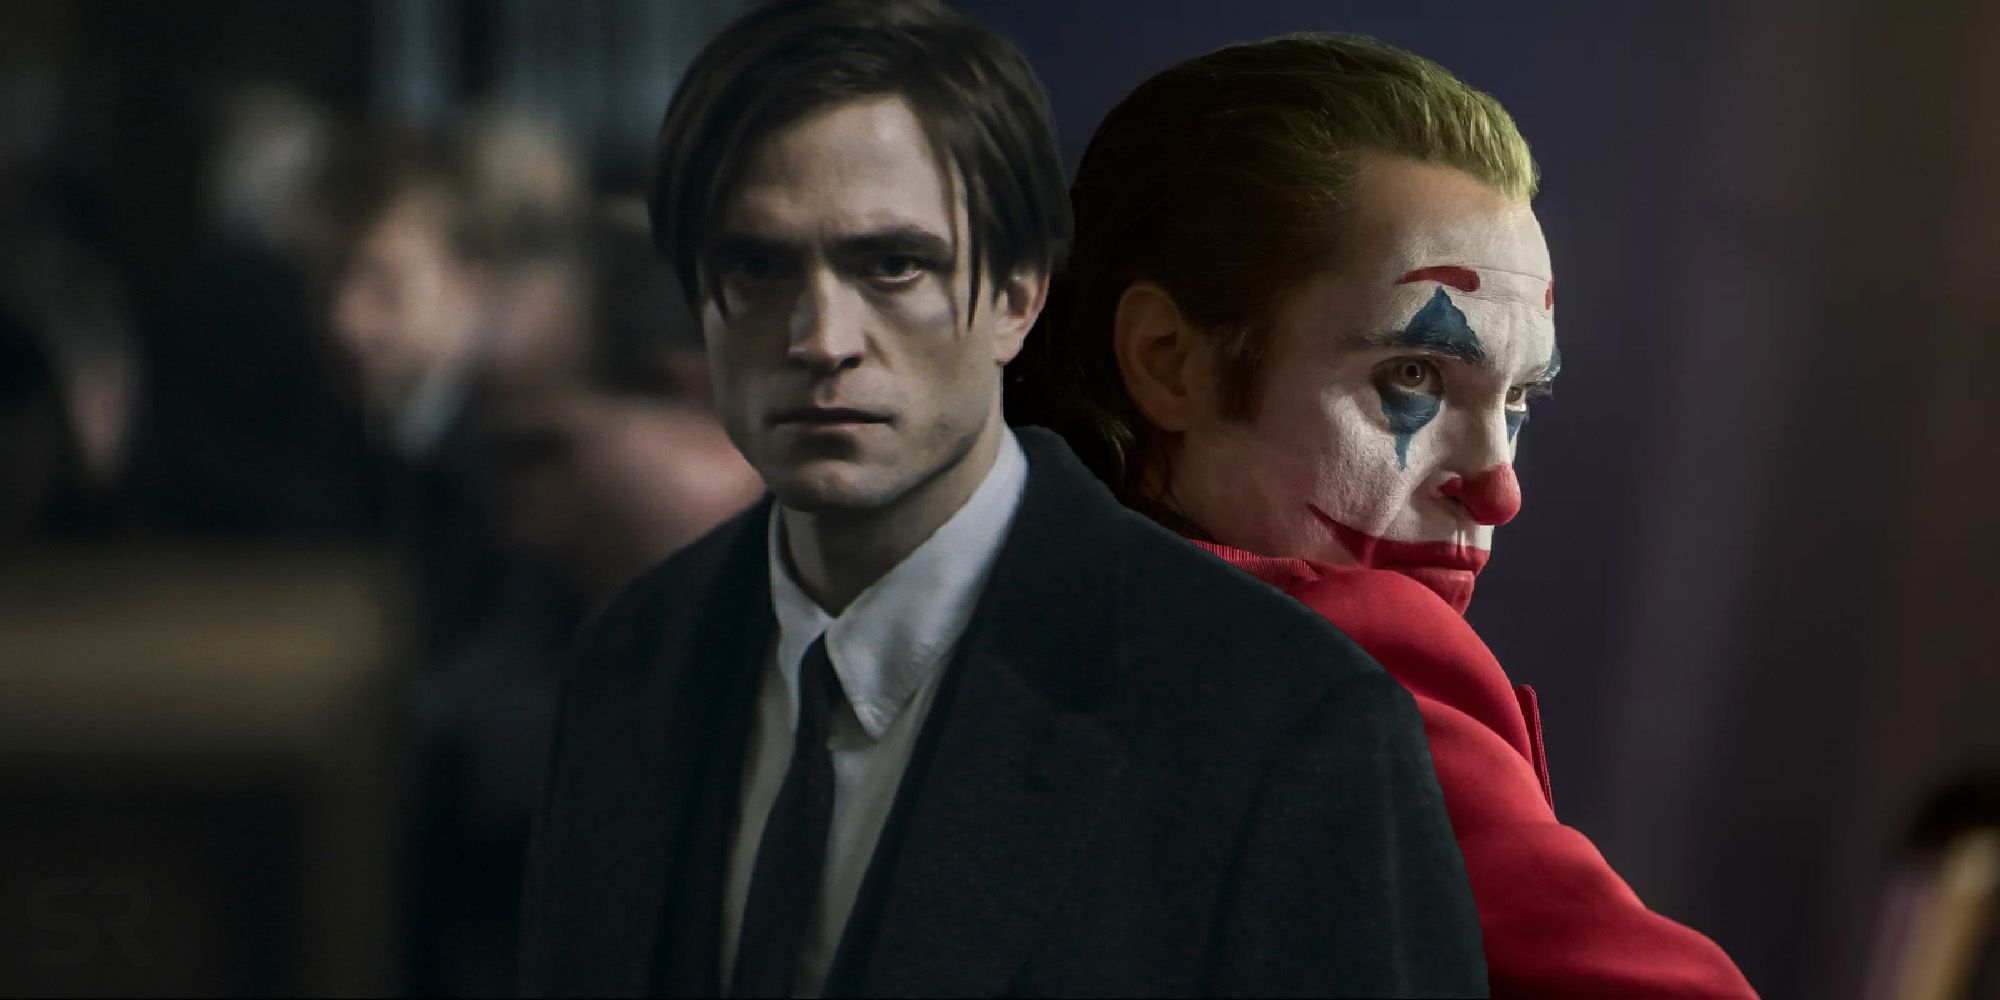 The Batman: 7 Characters Confirmed To Appear (& 3 That Are Rumored To)